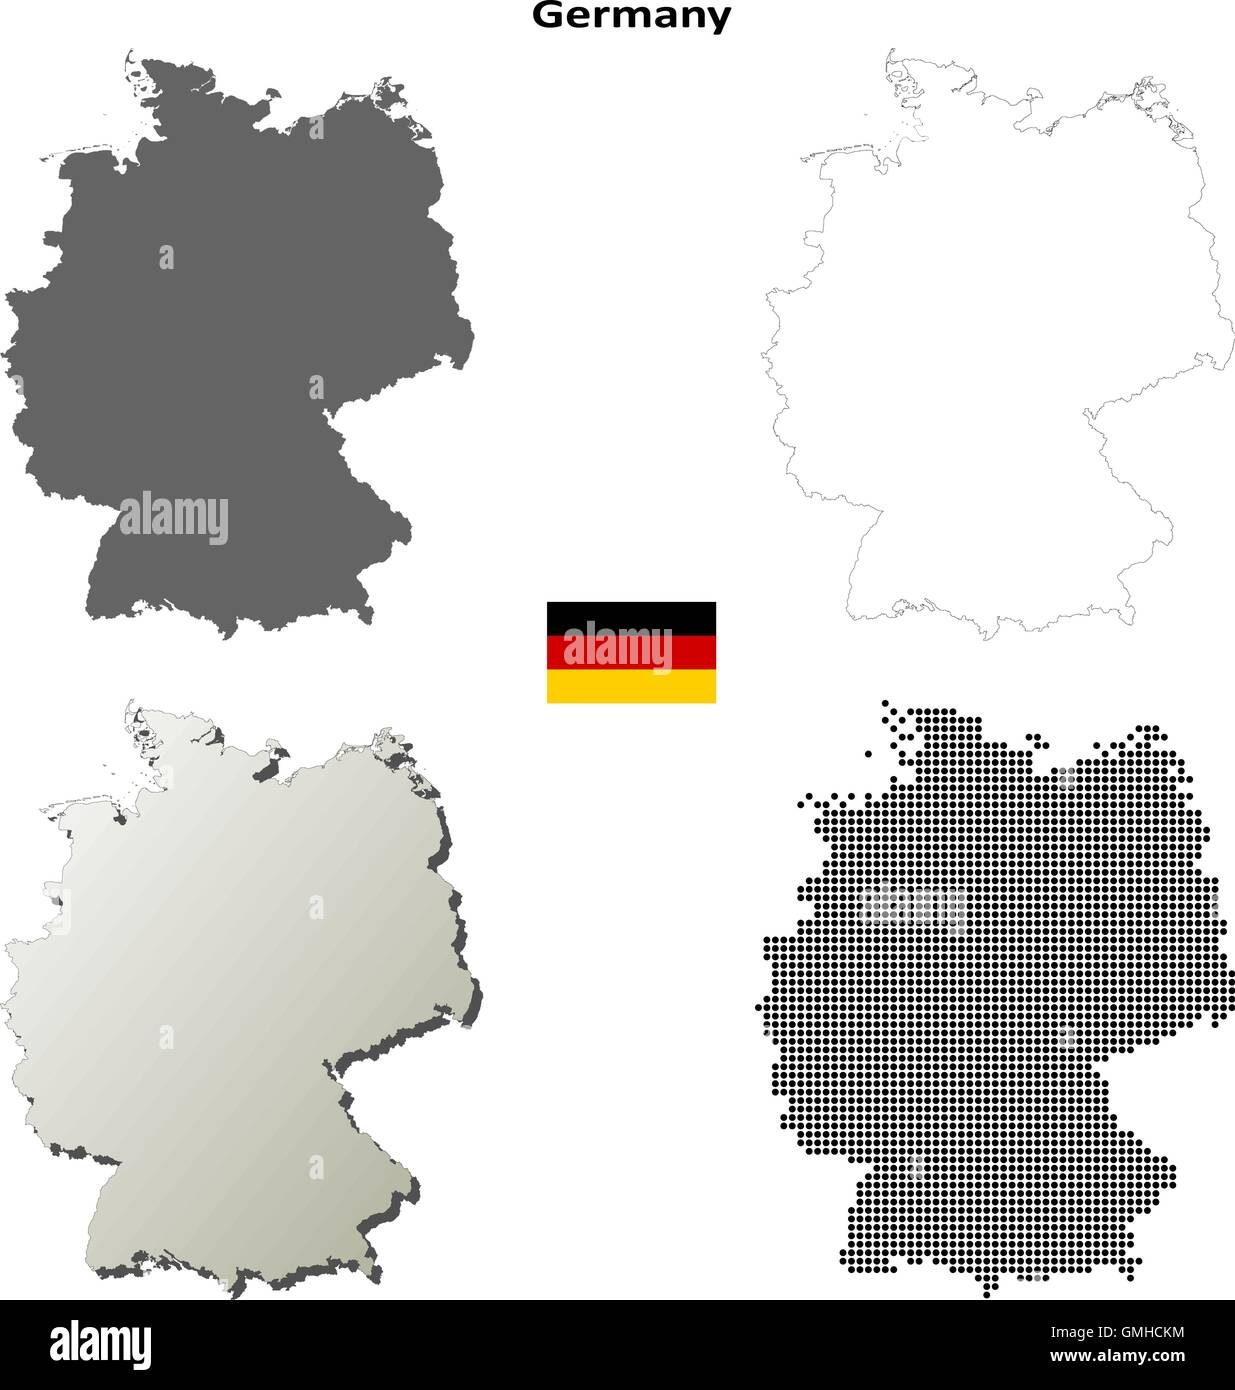 Germany outline map set - Stock Vector